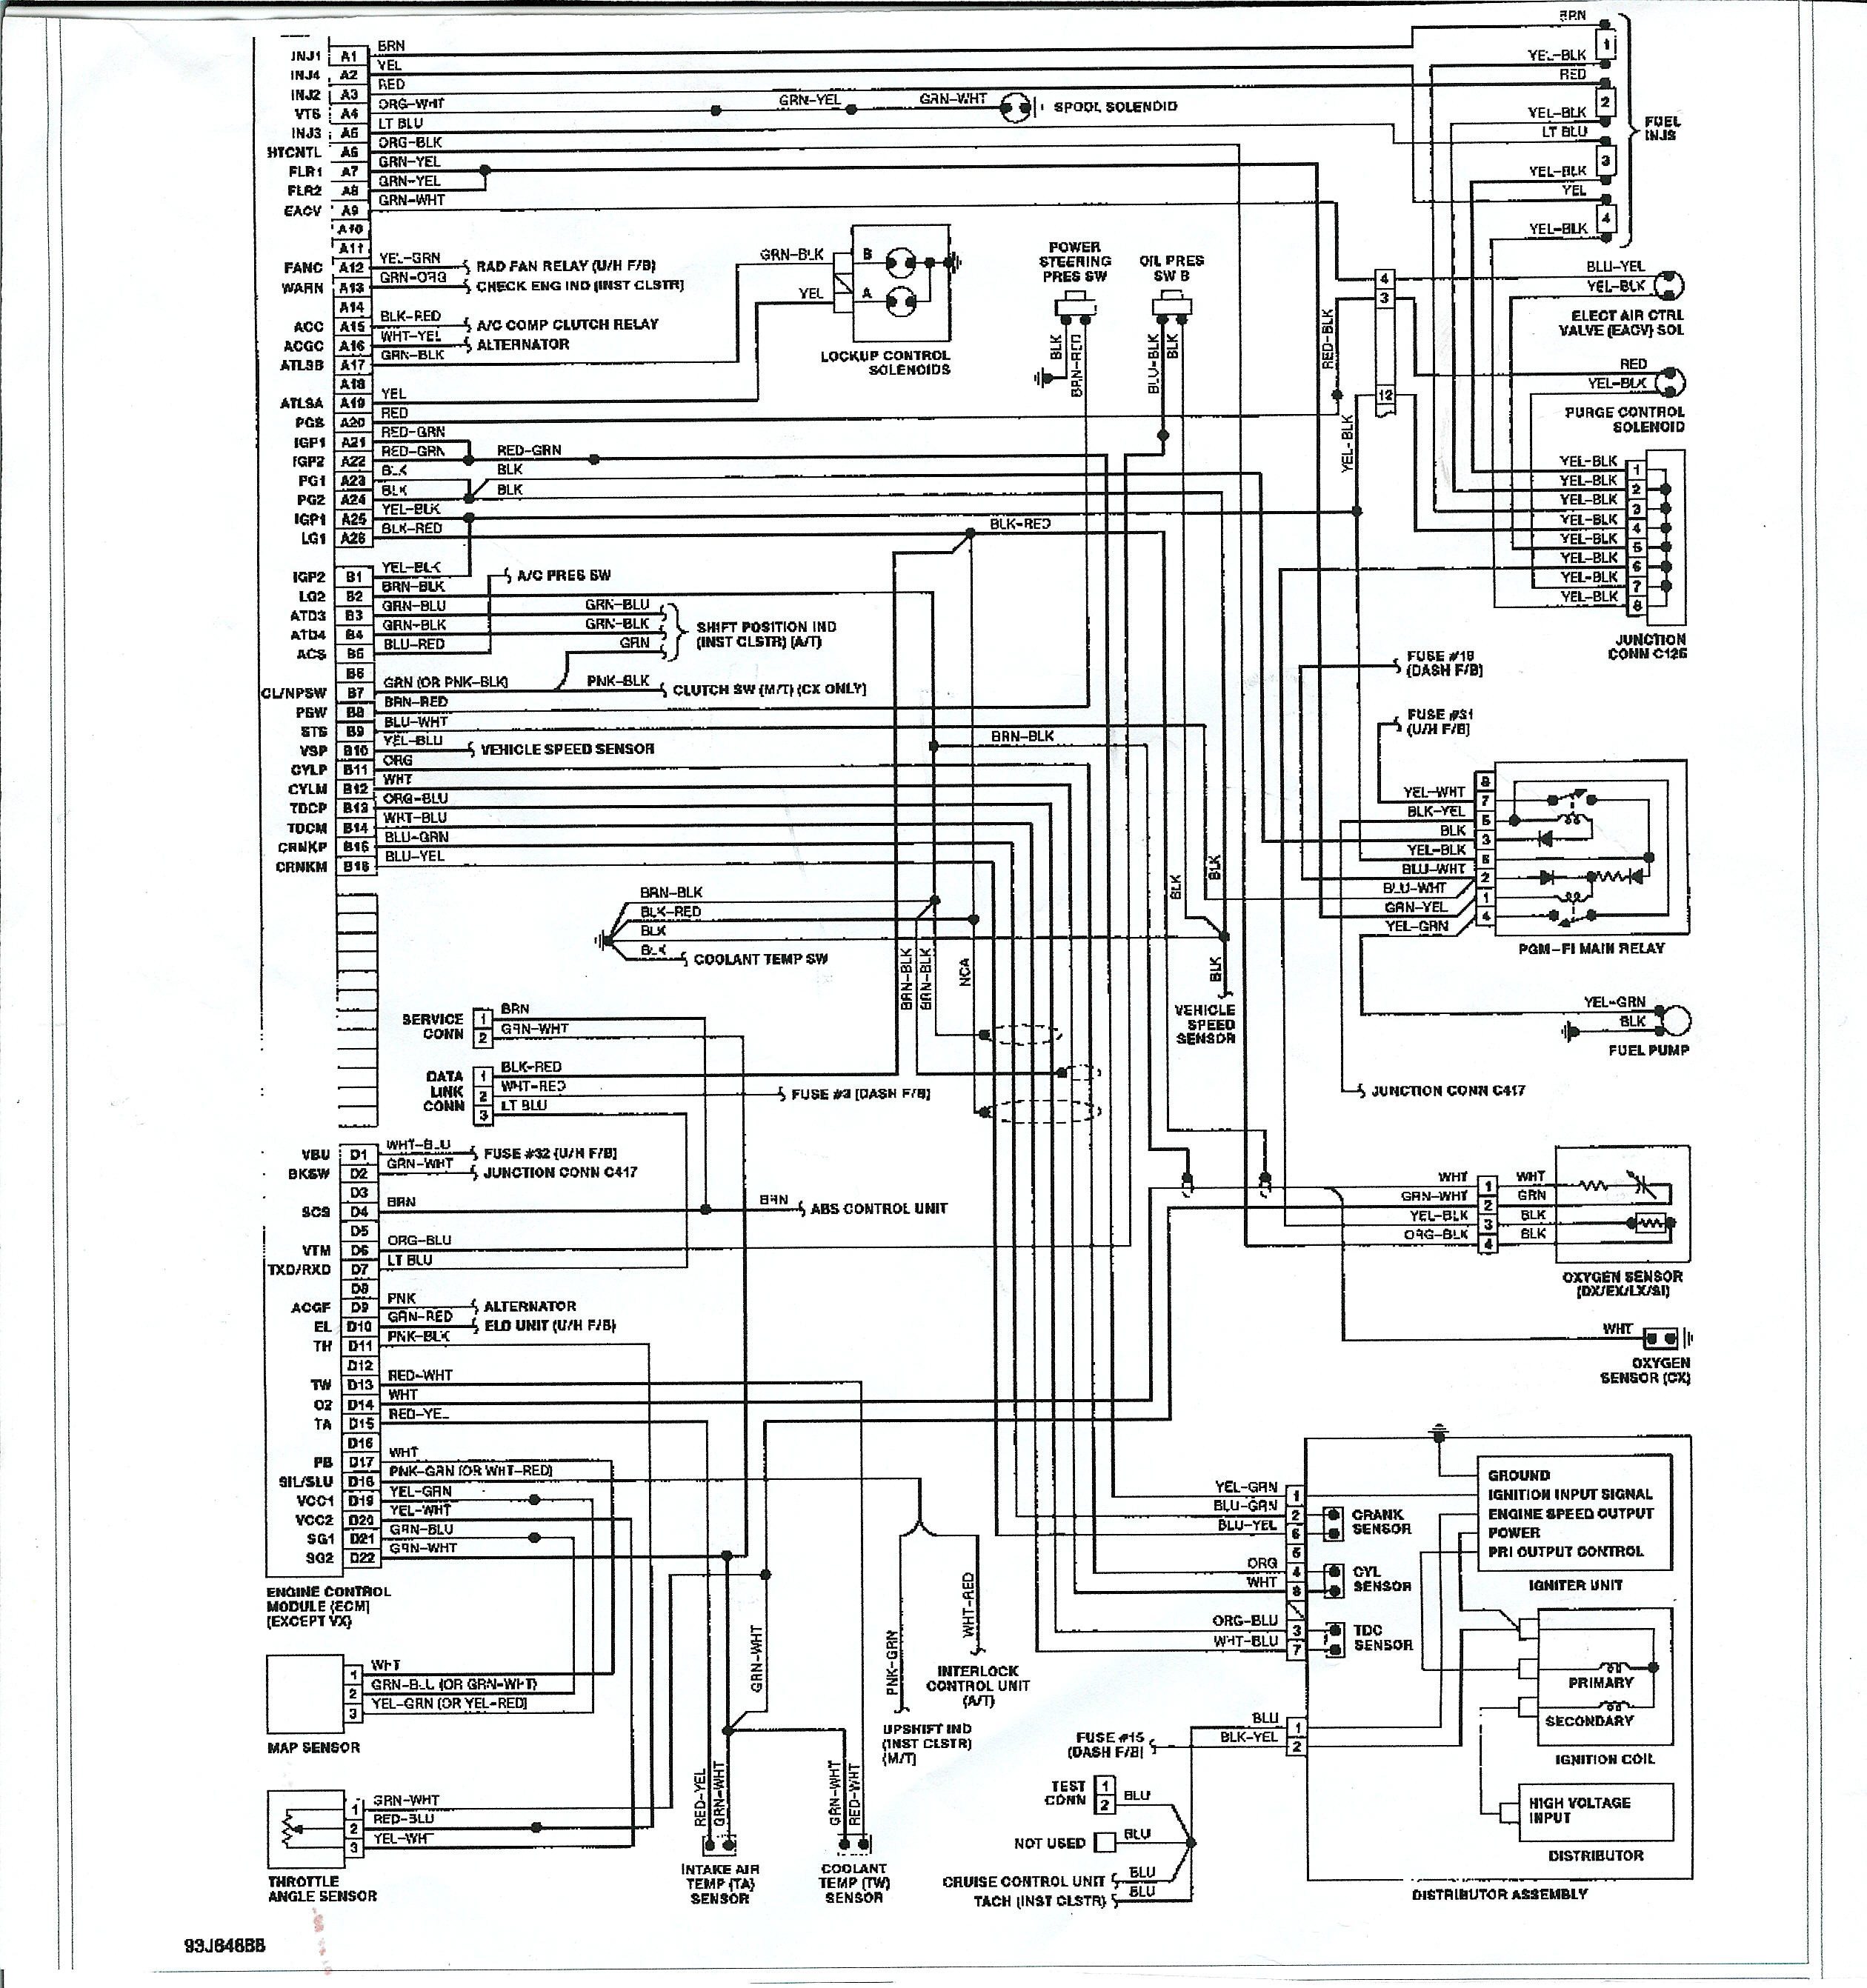 2013 Honda Civic Transmission Wiring Diagram. Honda Civic